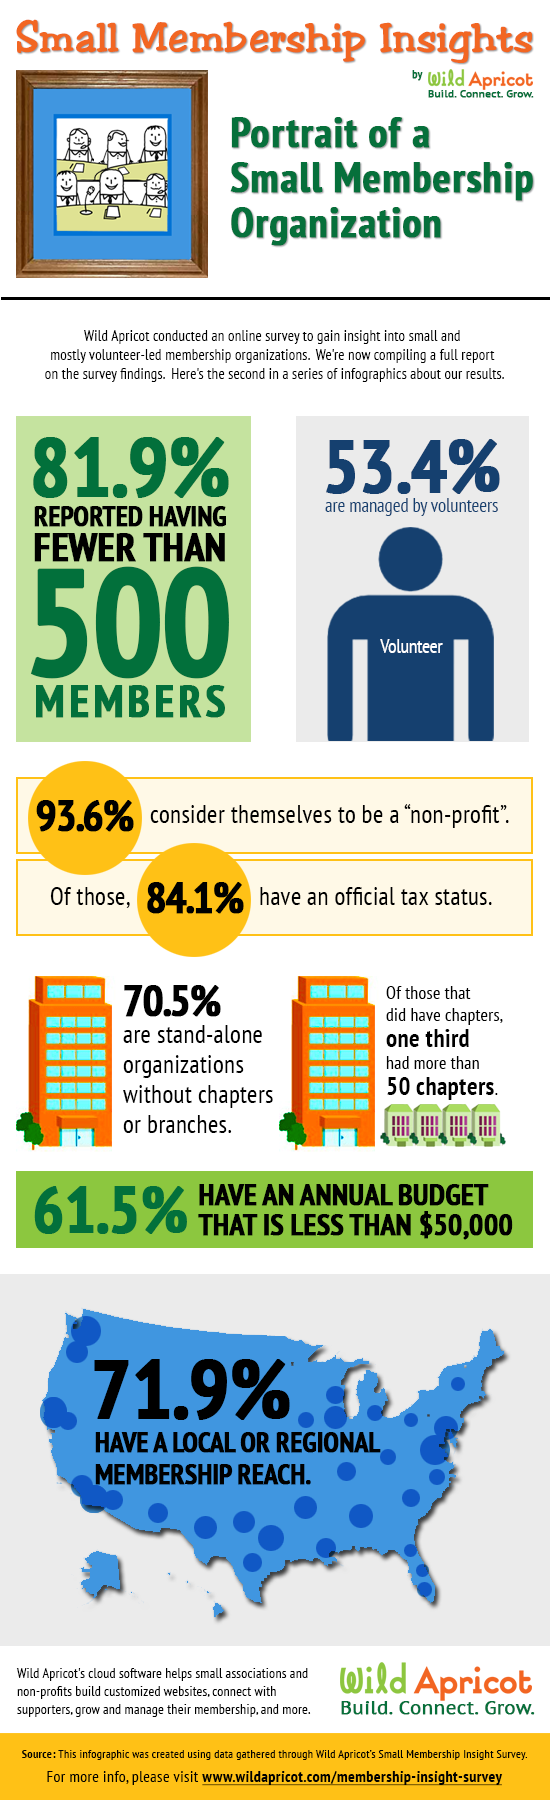 Small Membership Insights - Portrait of a Small Membership Organization